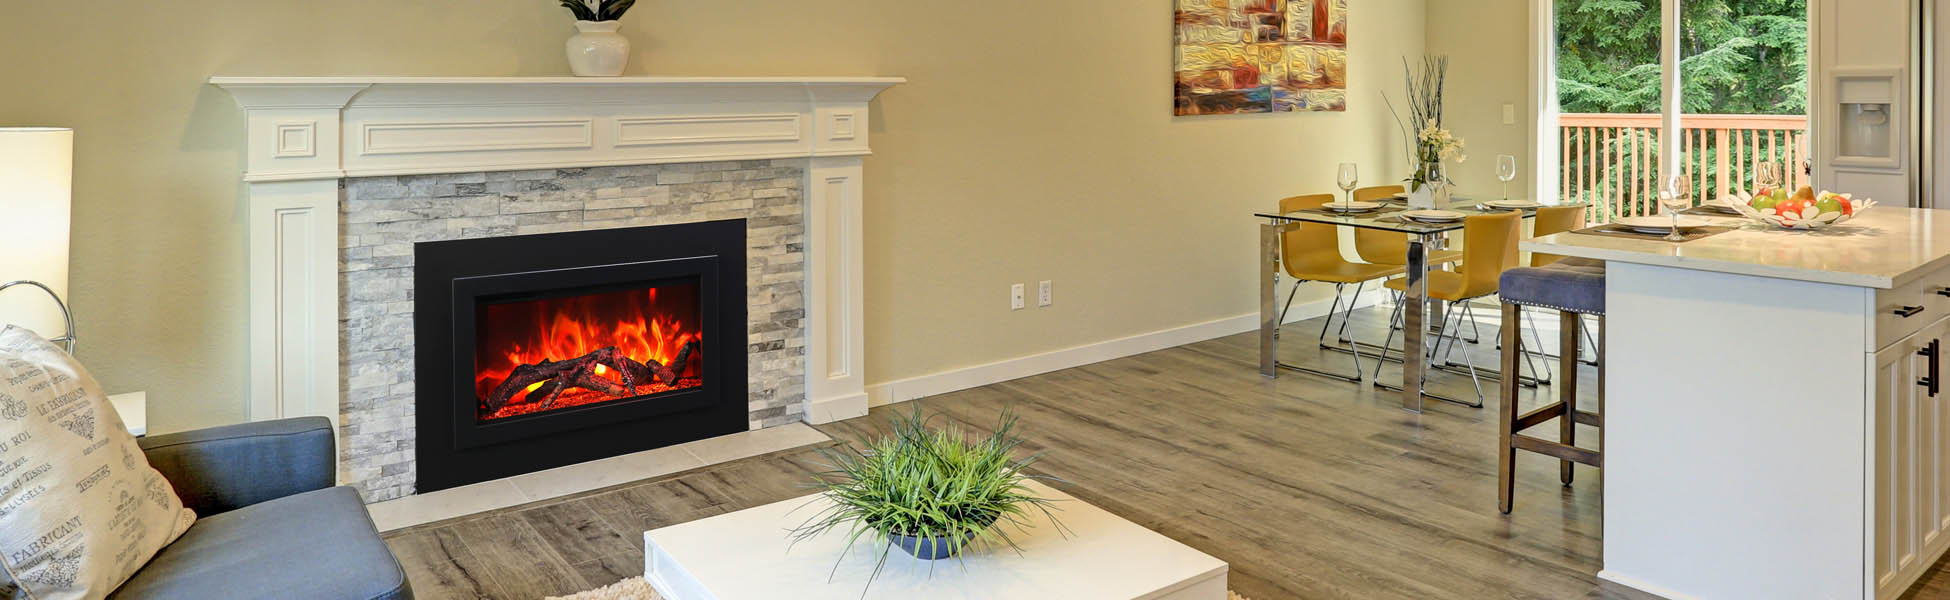 traditional-insert-30-with-4-side-trim-and-oak-log-1950x600.jpg